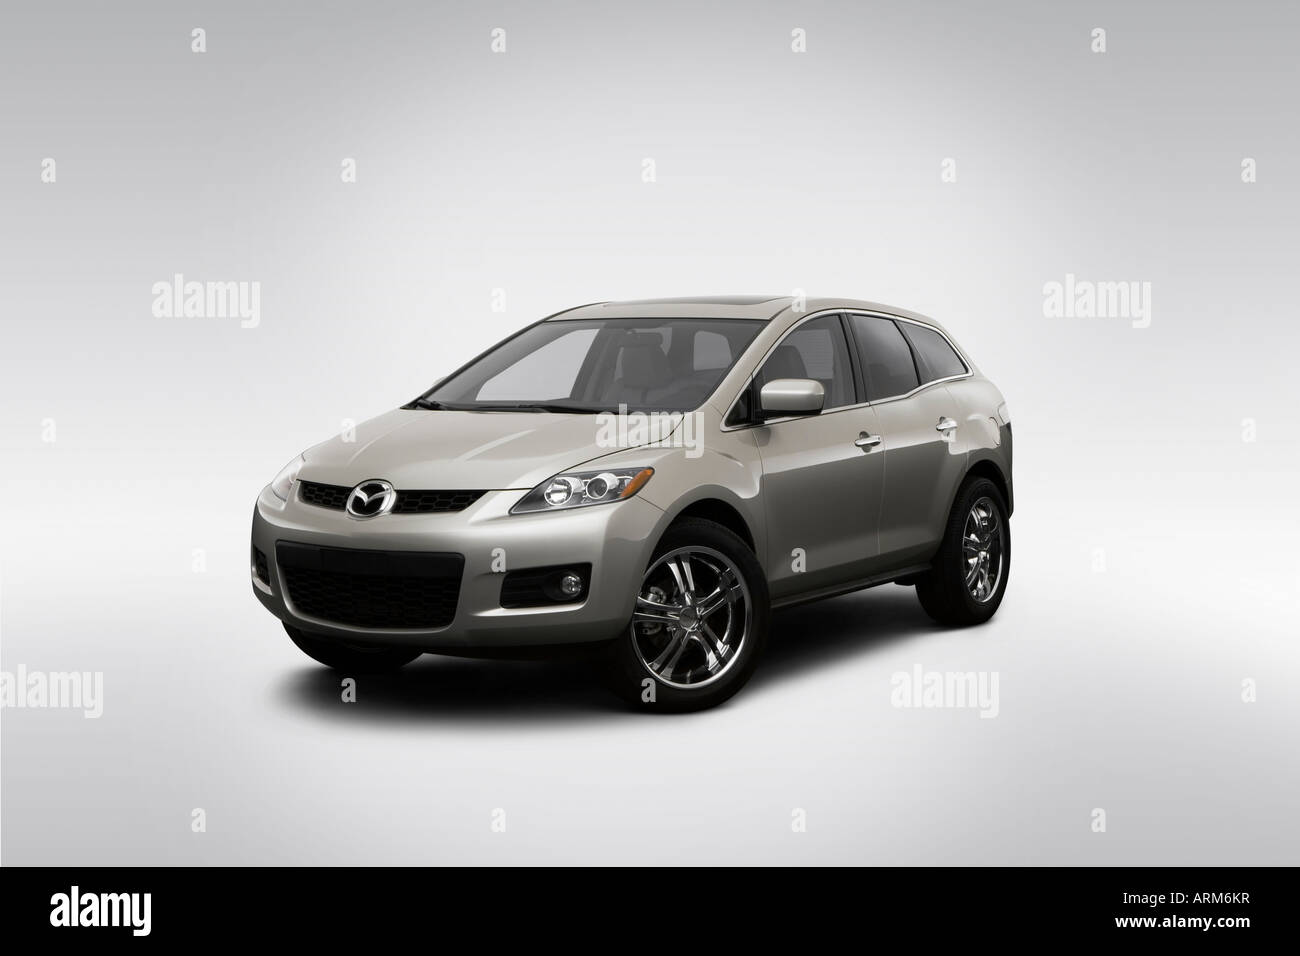 hight resolution of 2008 mazda cx 7 grand touring in silver front angle view